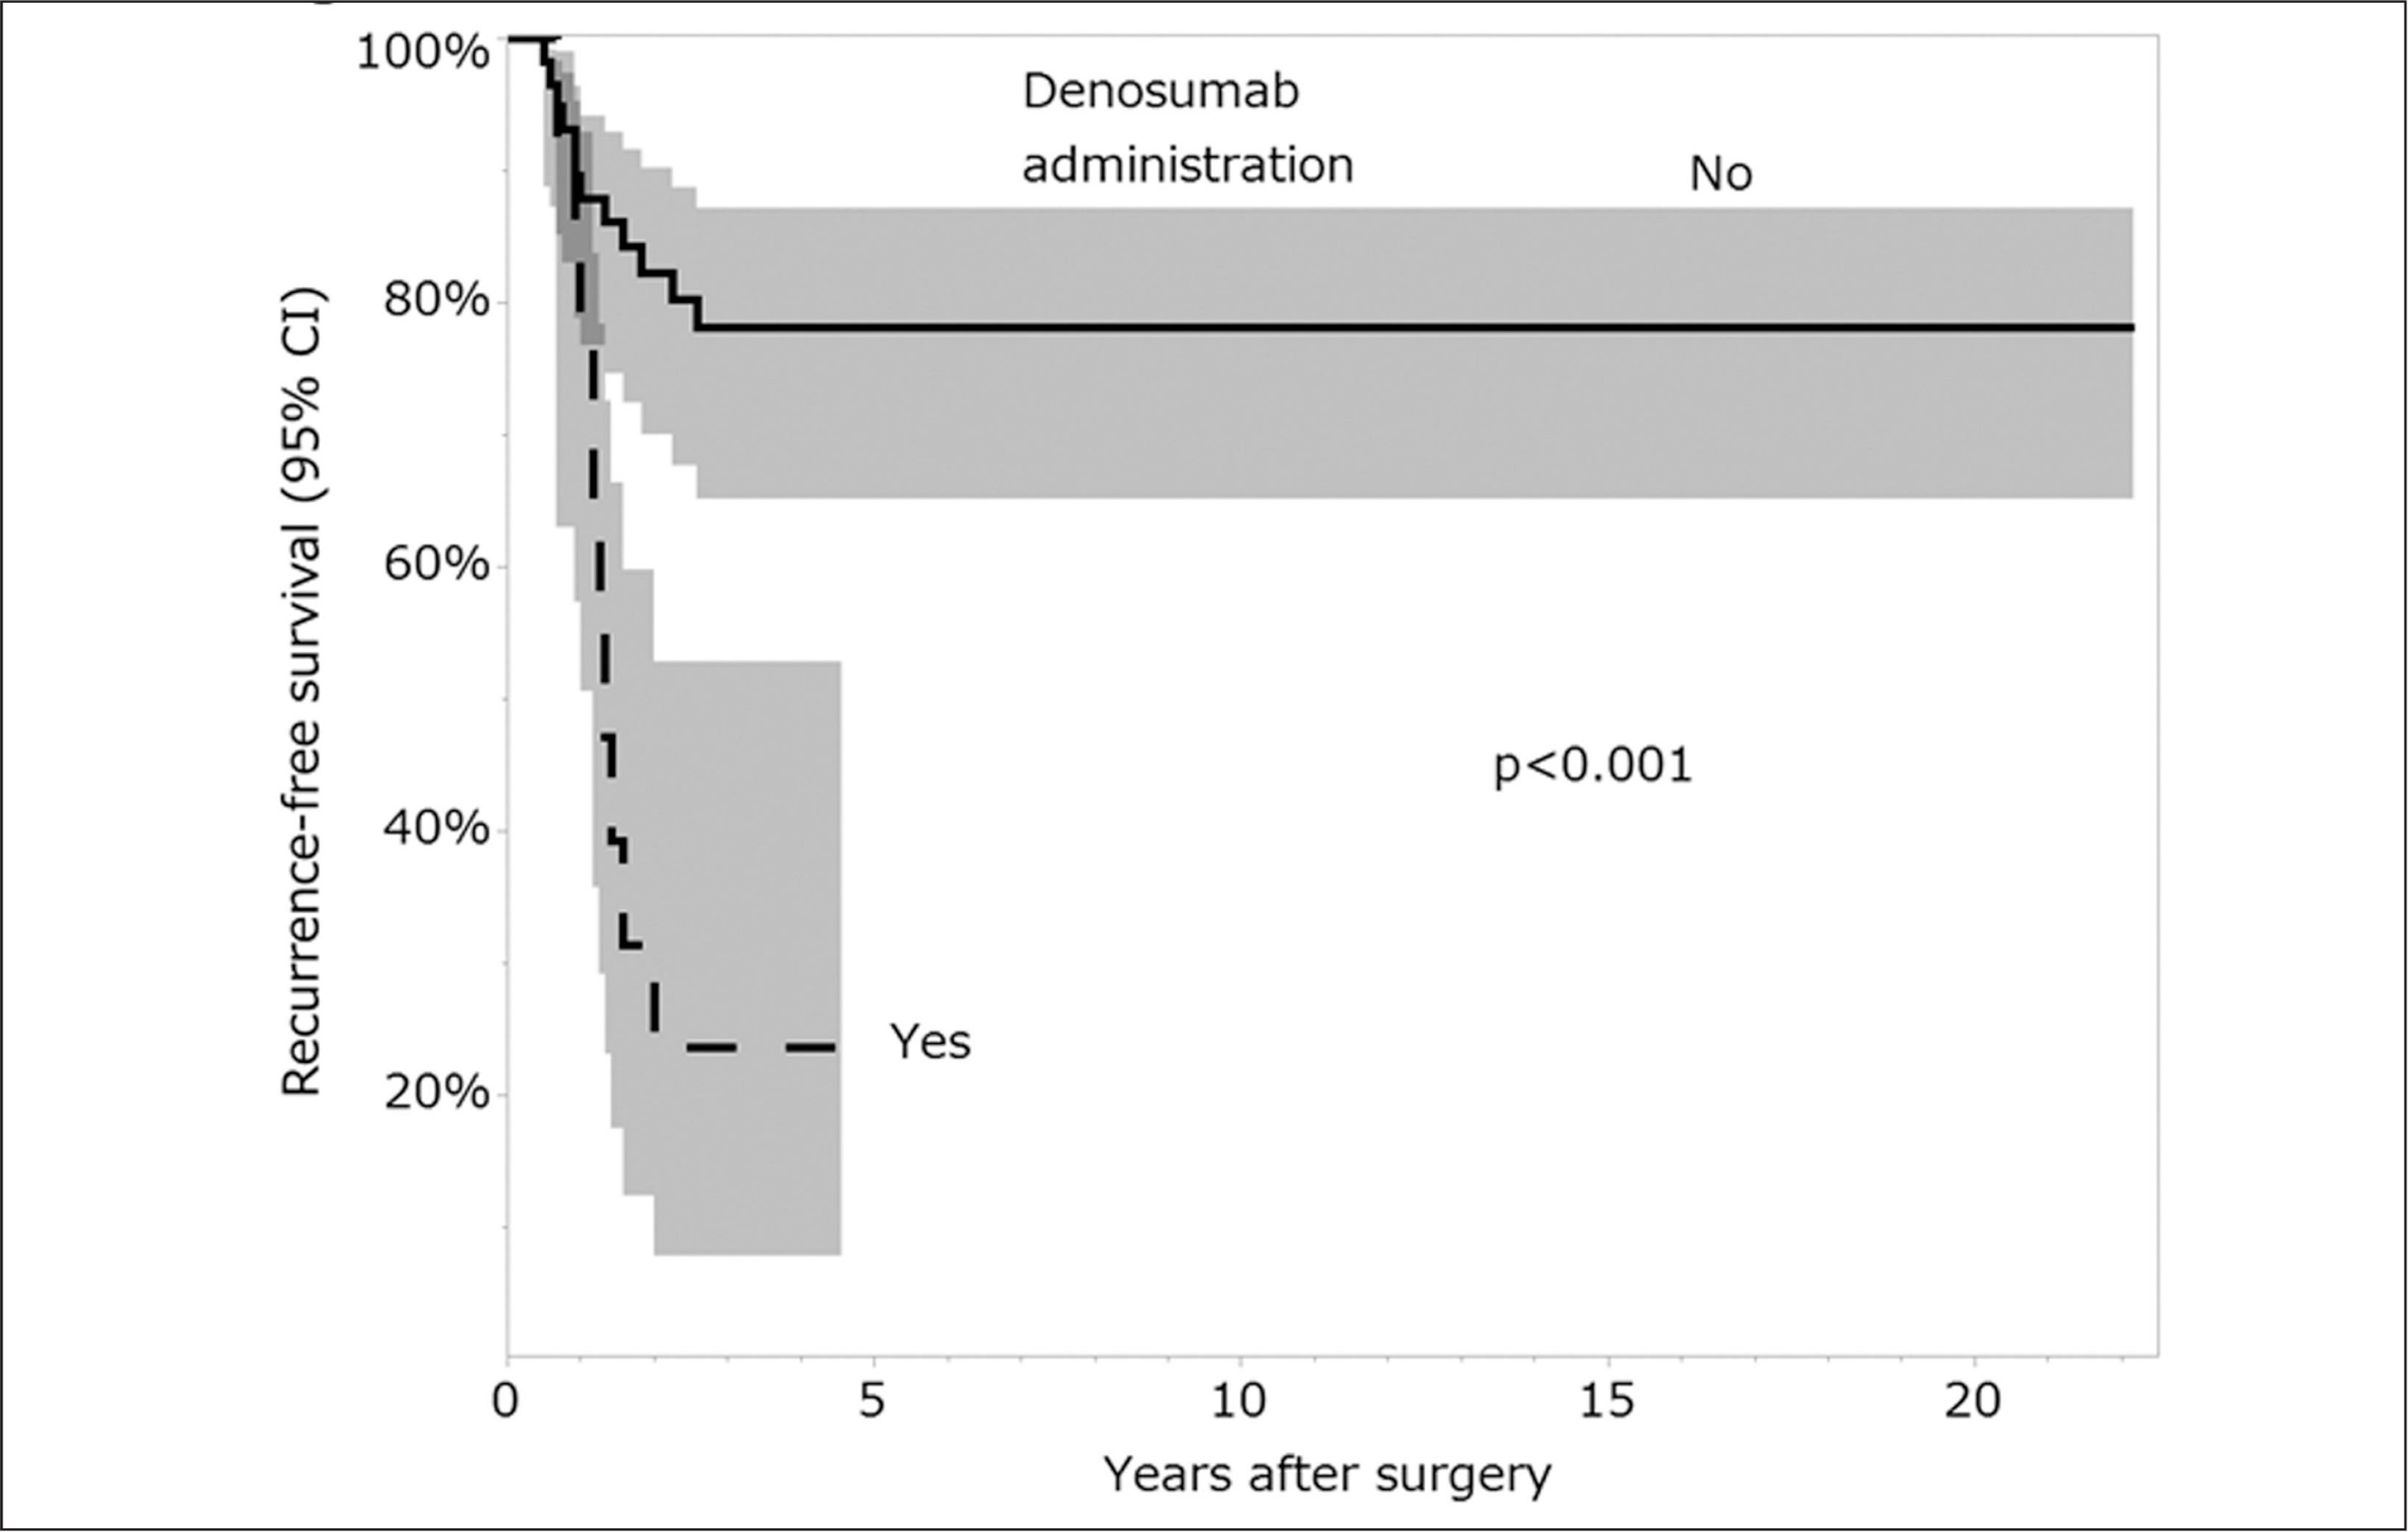 A Kaplan-Meier curve shows the 5-year local recurrence-free survival of the patients with GCTB in the distal radius who were treated with and without denosumab administration was 23.6% (95% CI, 7.8–52.8) and 78.1% (95% CI, 65.1–87.2), respectively; local recurrence free survival was significantly better after surgery alone than surgery and denosumab.